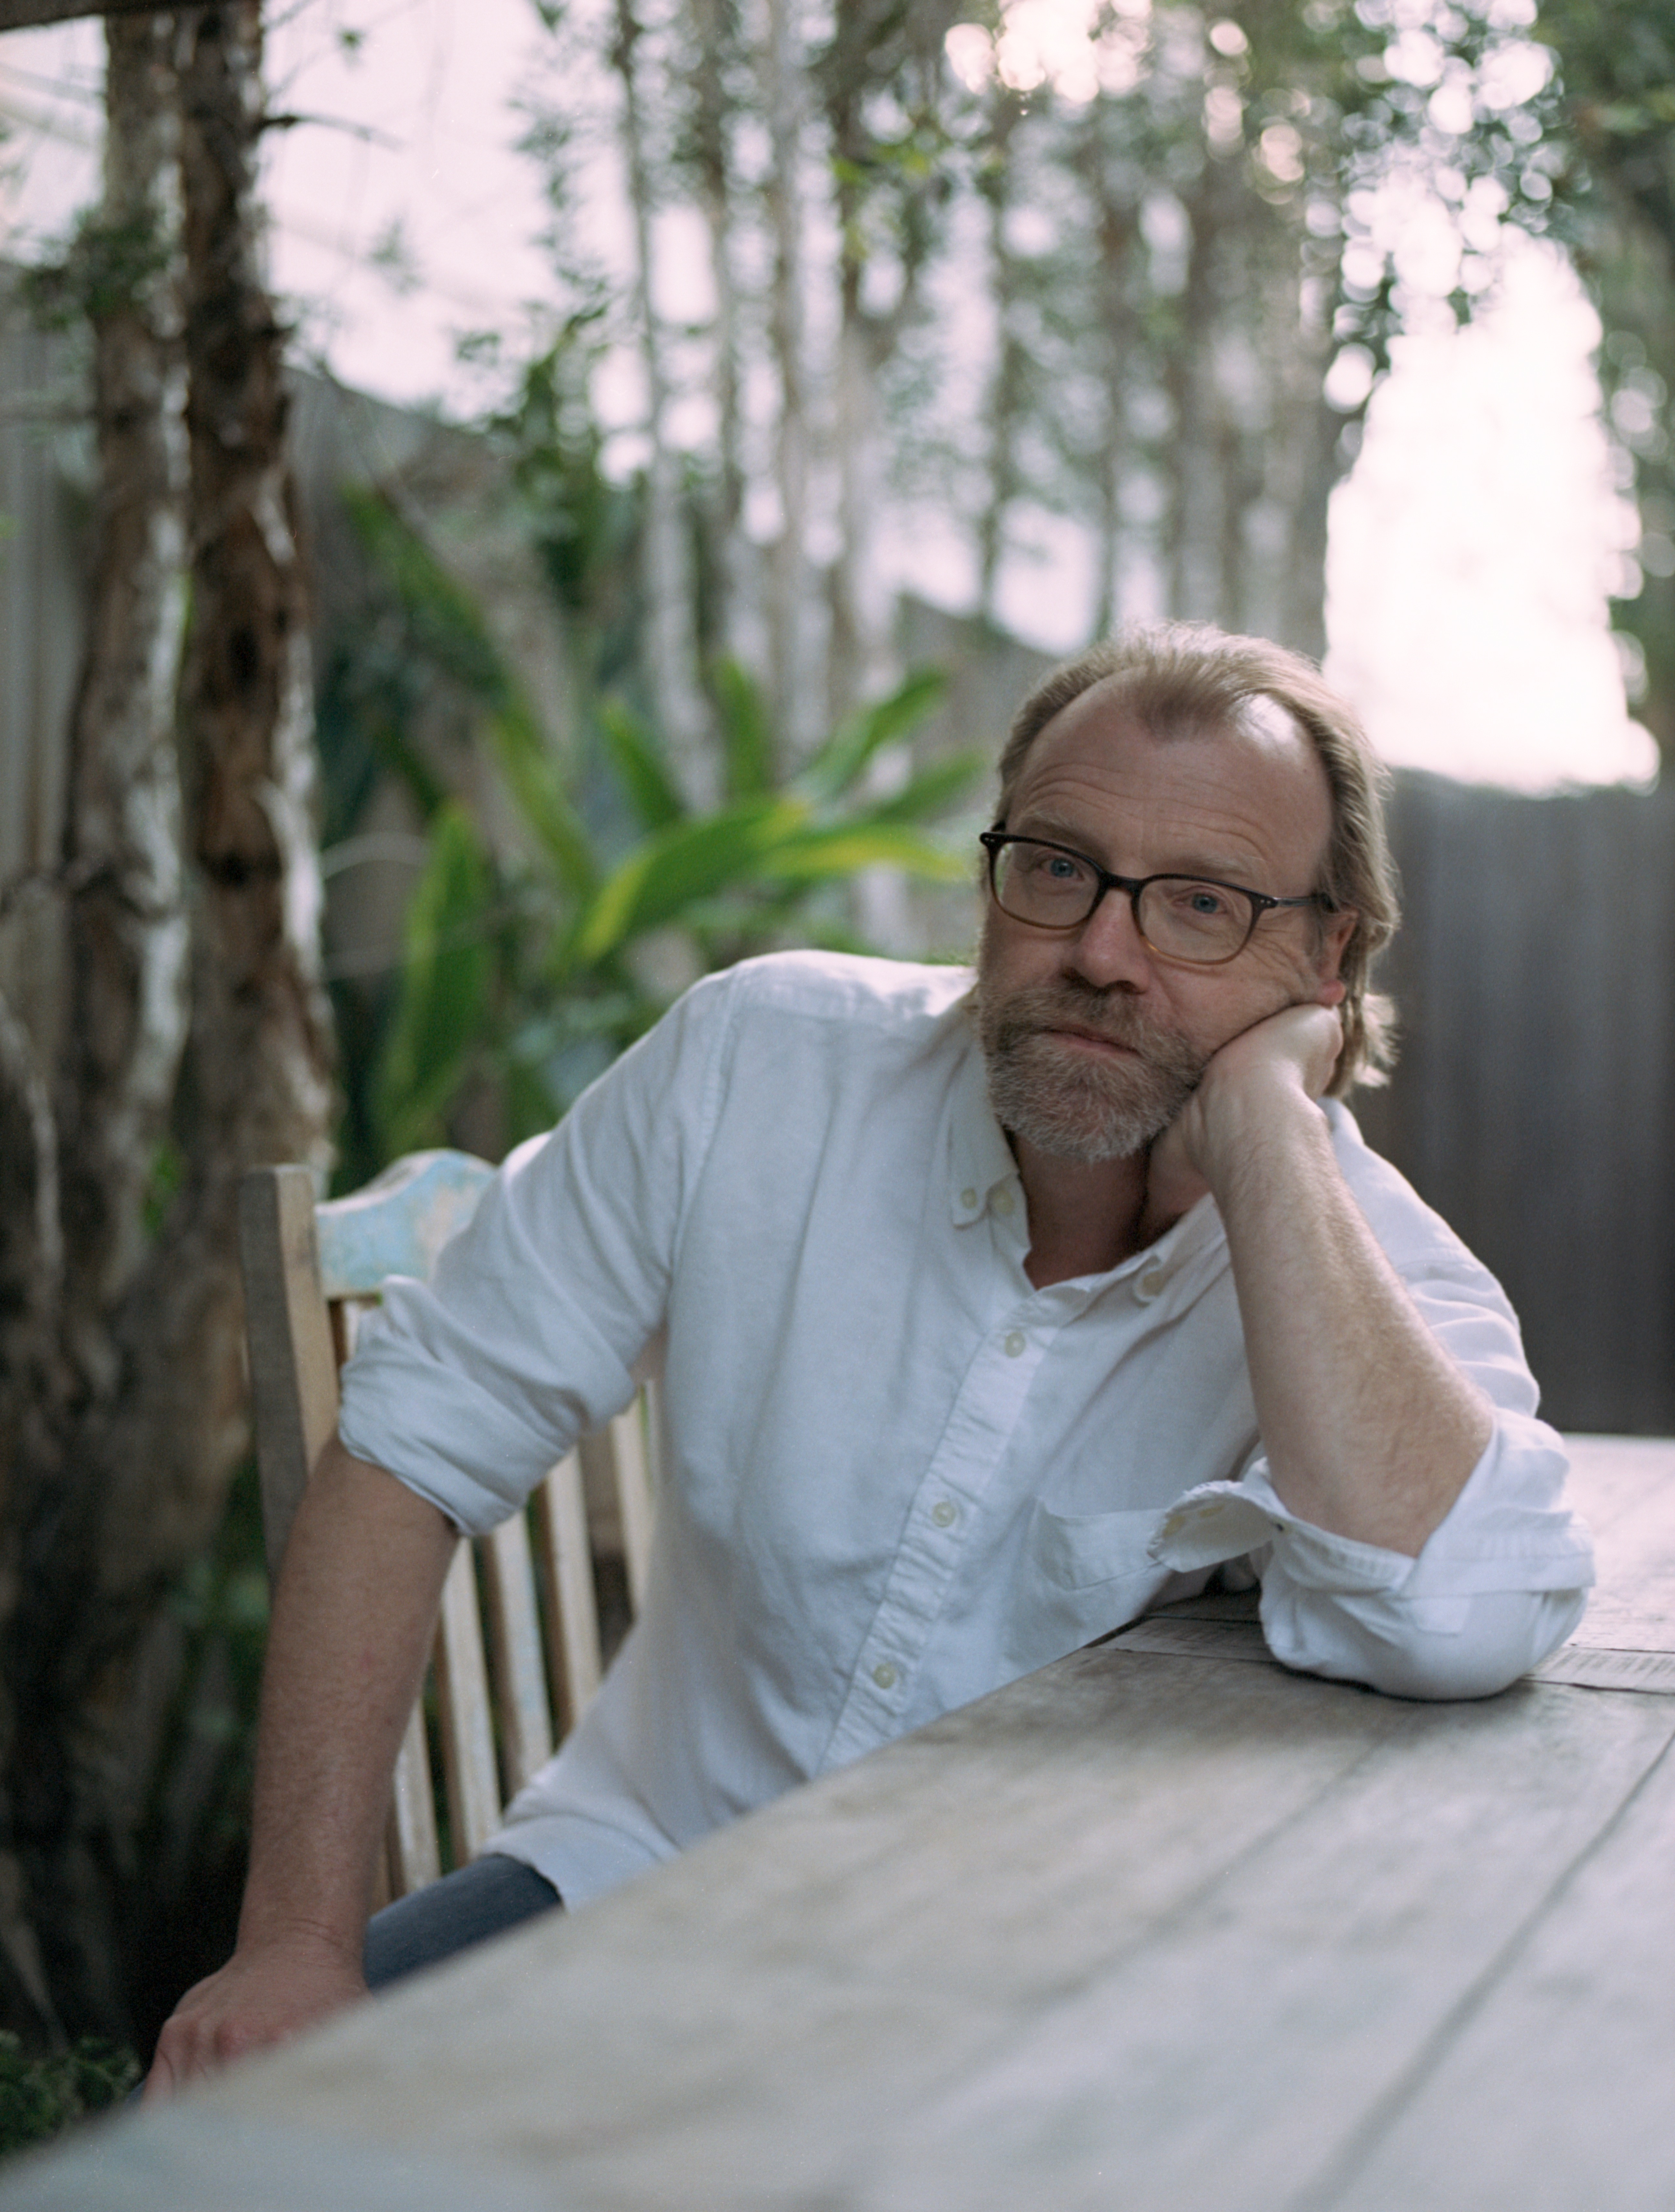 braindead megaphone essay The braindead megaphone is george saunders's first full-length essay collection, published in 2007 it is 272 pages long the collection has many essays that appeared in the new yorker and gq.